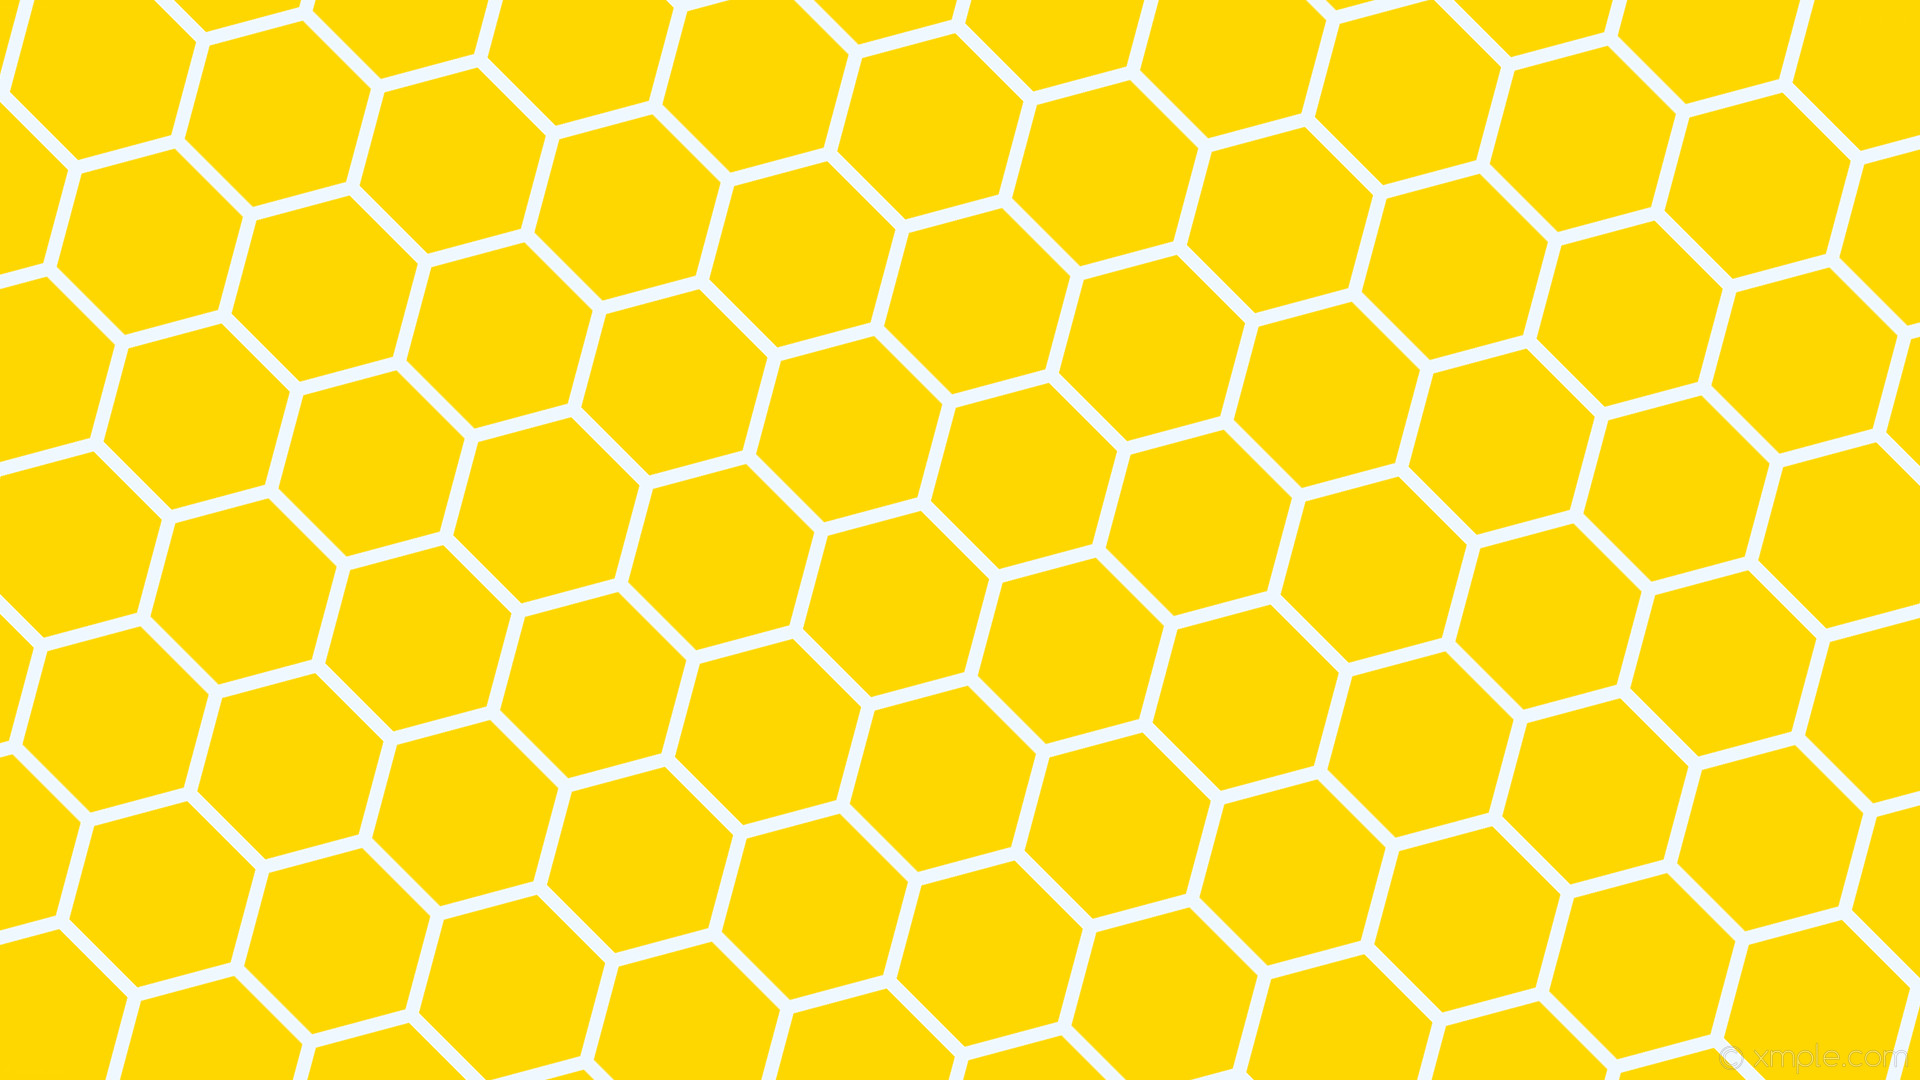 Res: 1920x1080, Background:Honeycomb Background Honeycomb Background